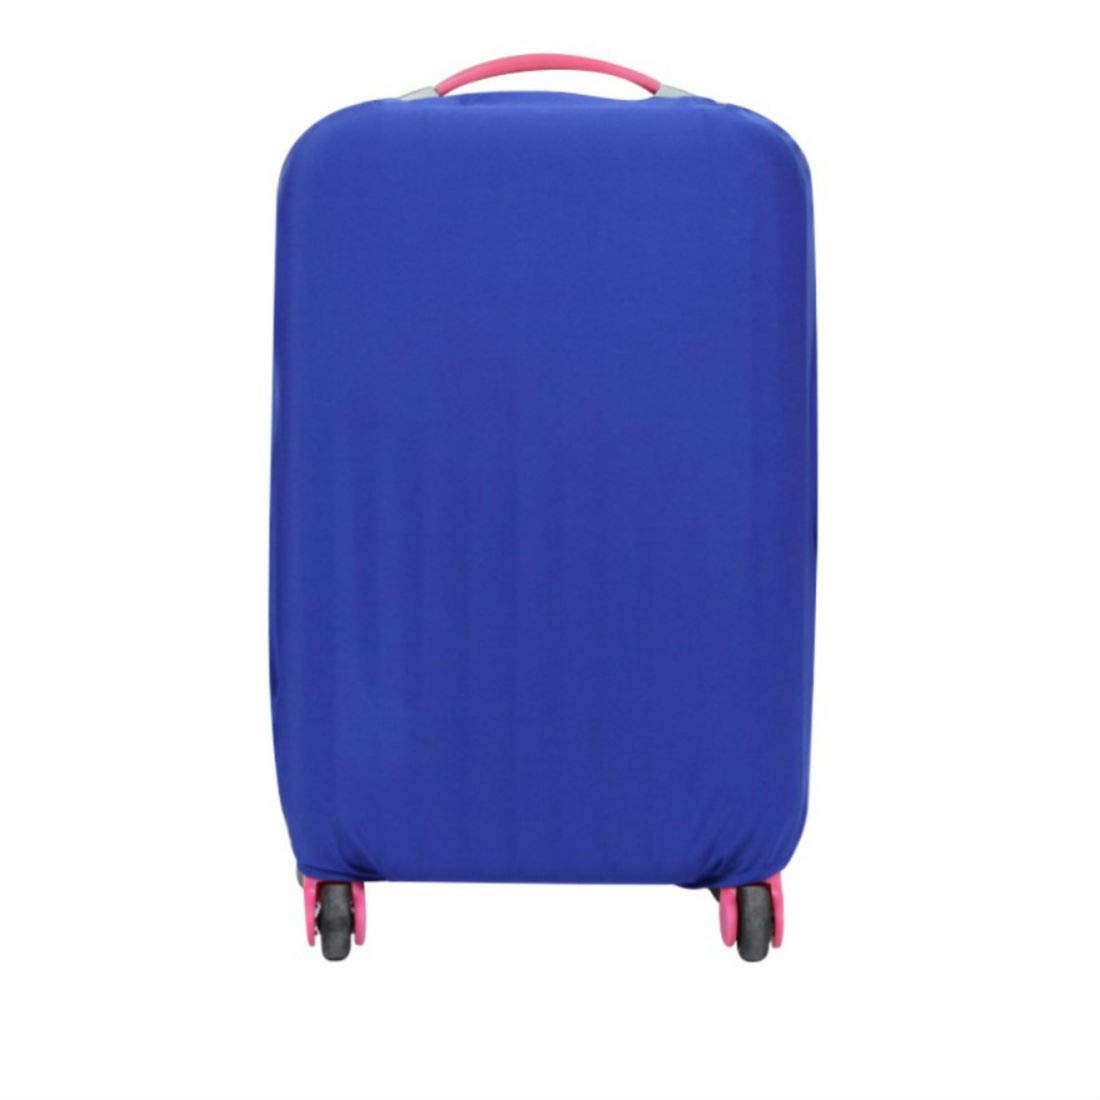 LARGE Blue US 18-26 inch Travel Luggage Suitcase Protective Dust-proof Cover Case Protector